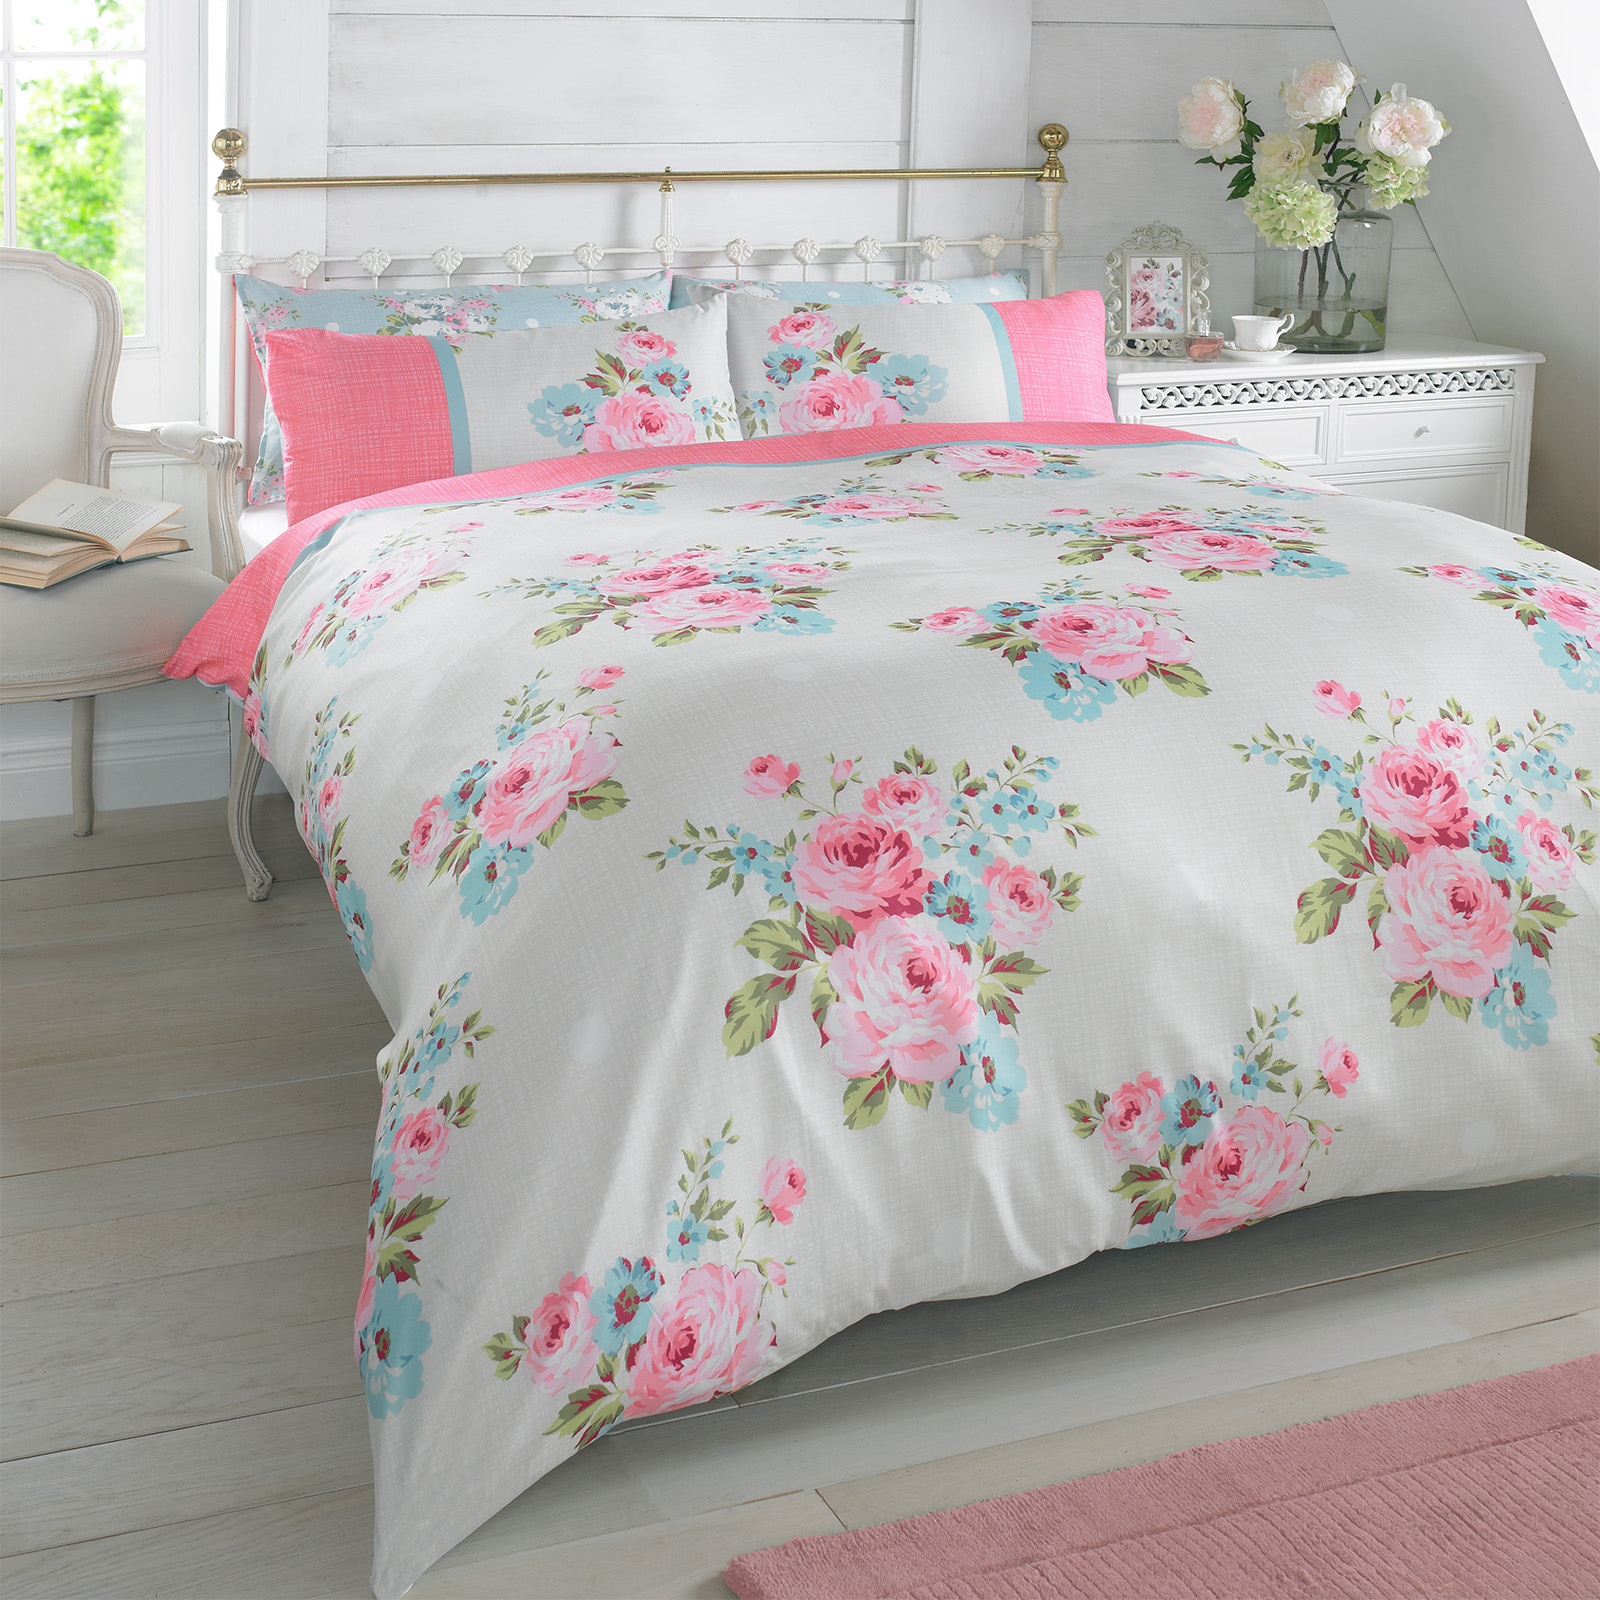 White Single Quilt Cover Duvet Quilt Cover With Pillowcase Bedding Set Floral Rosie